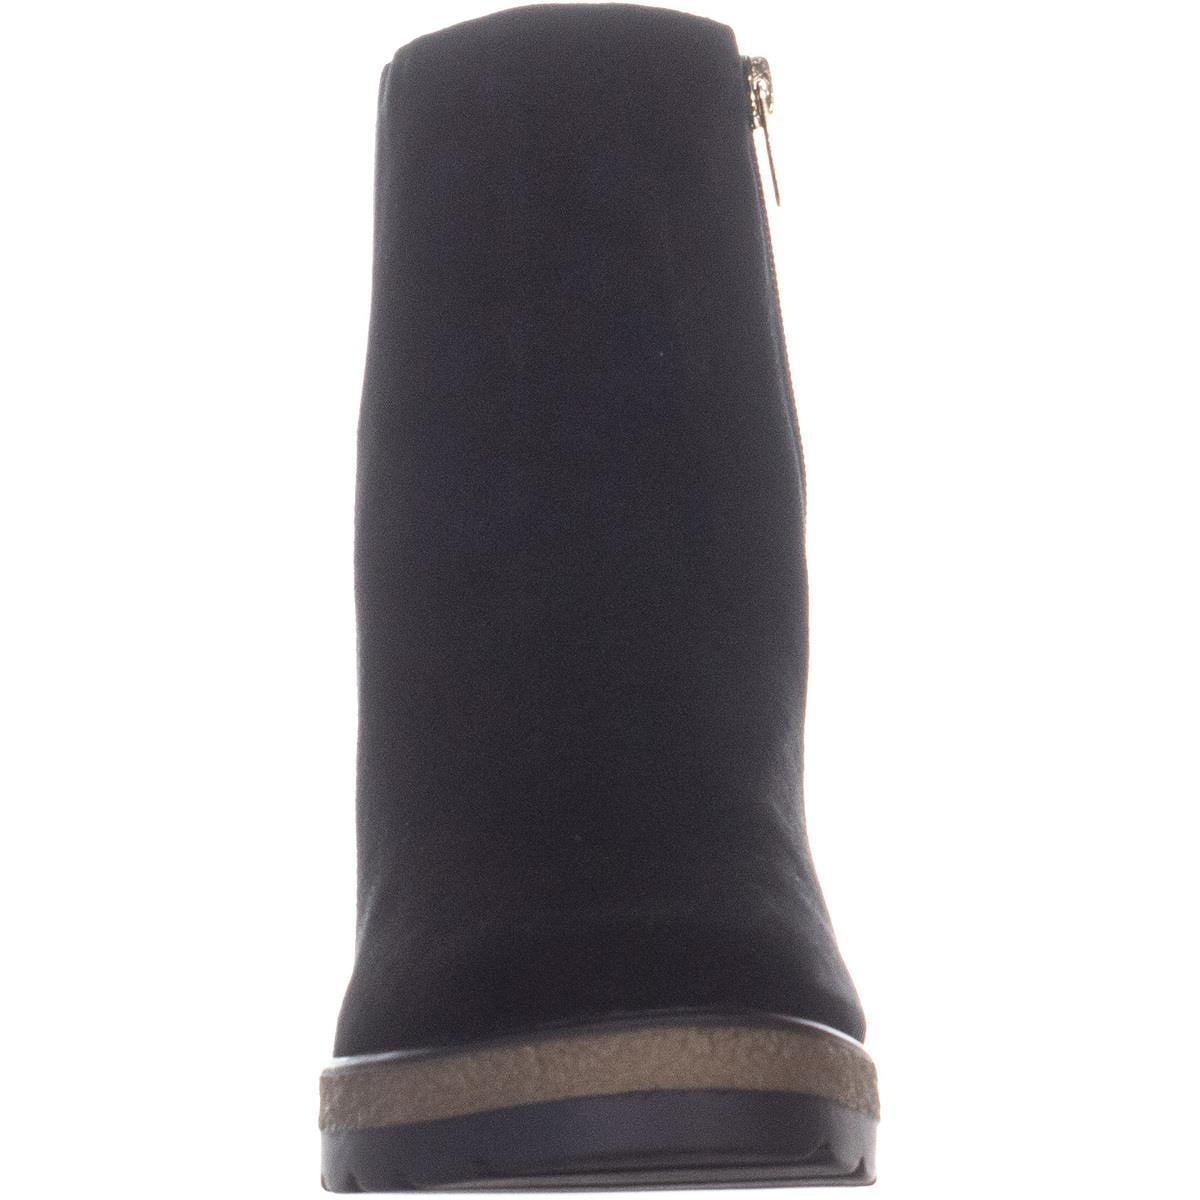 3bc5a2fb6e8 Shop DKNY Daisy Wedge Ankle Boots, Black Suede - Free Shipping Today -  Overstock - 26063360